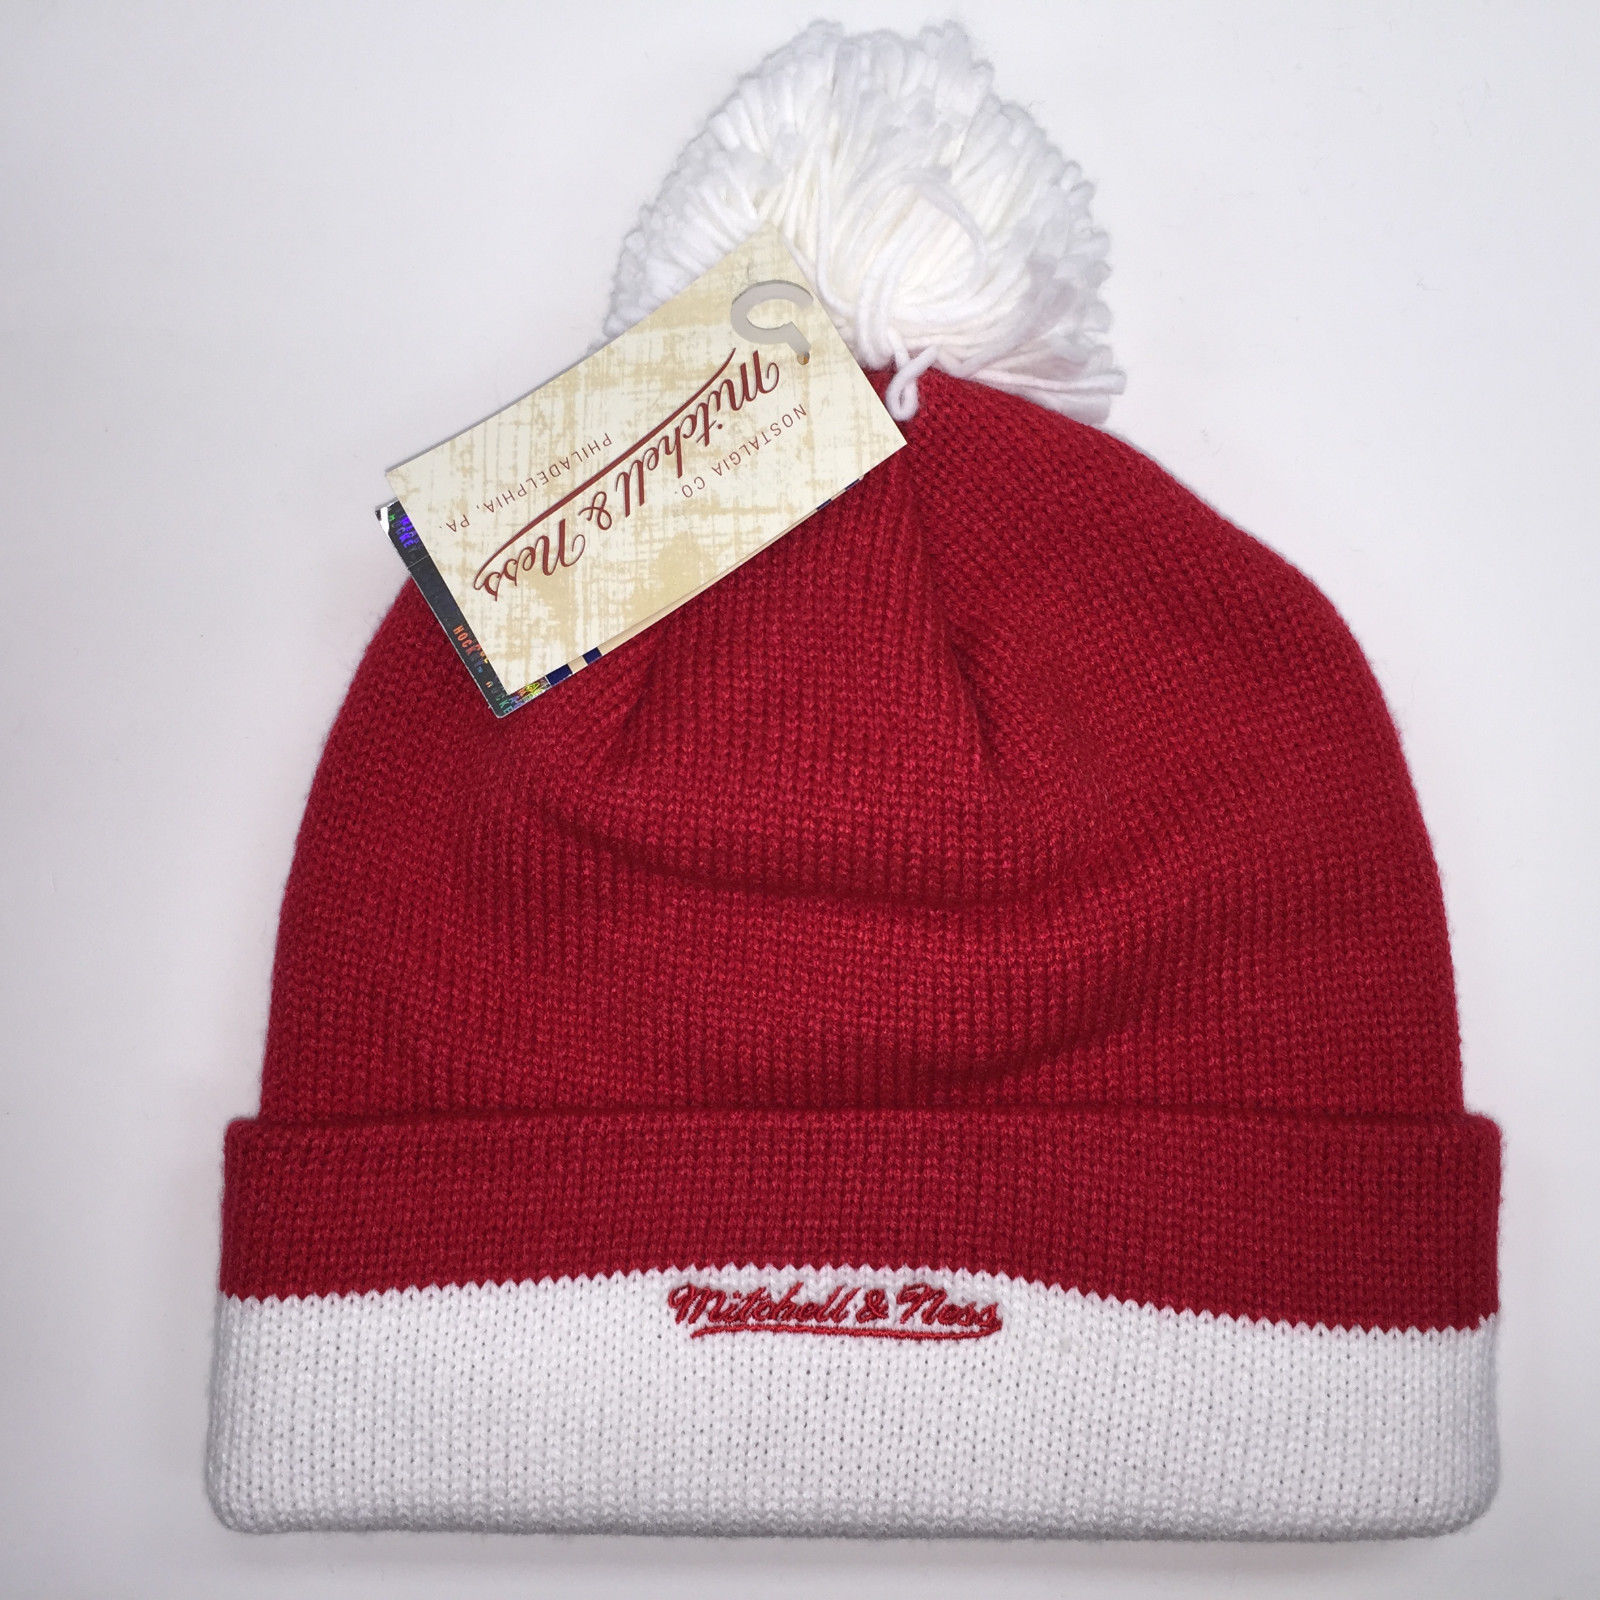 Mitchell & Ness NHL Detroit Red Wings Cuffed Pom Knit Beanie 6317